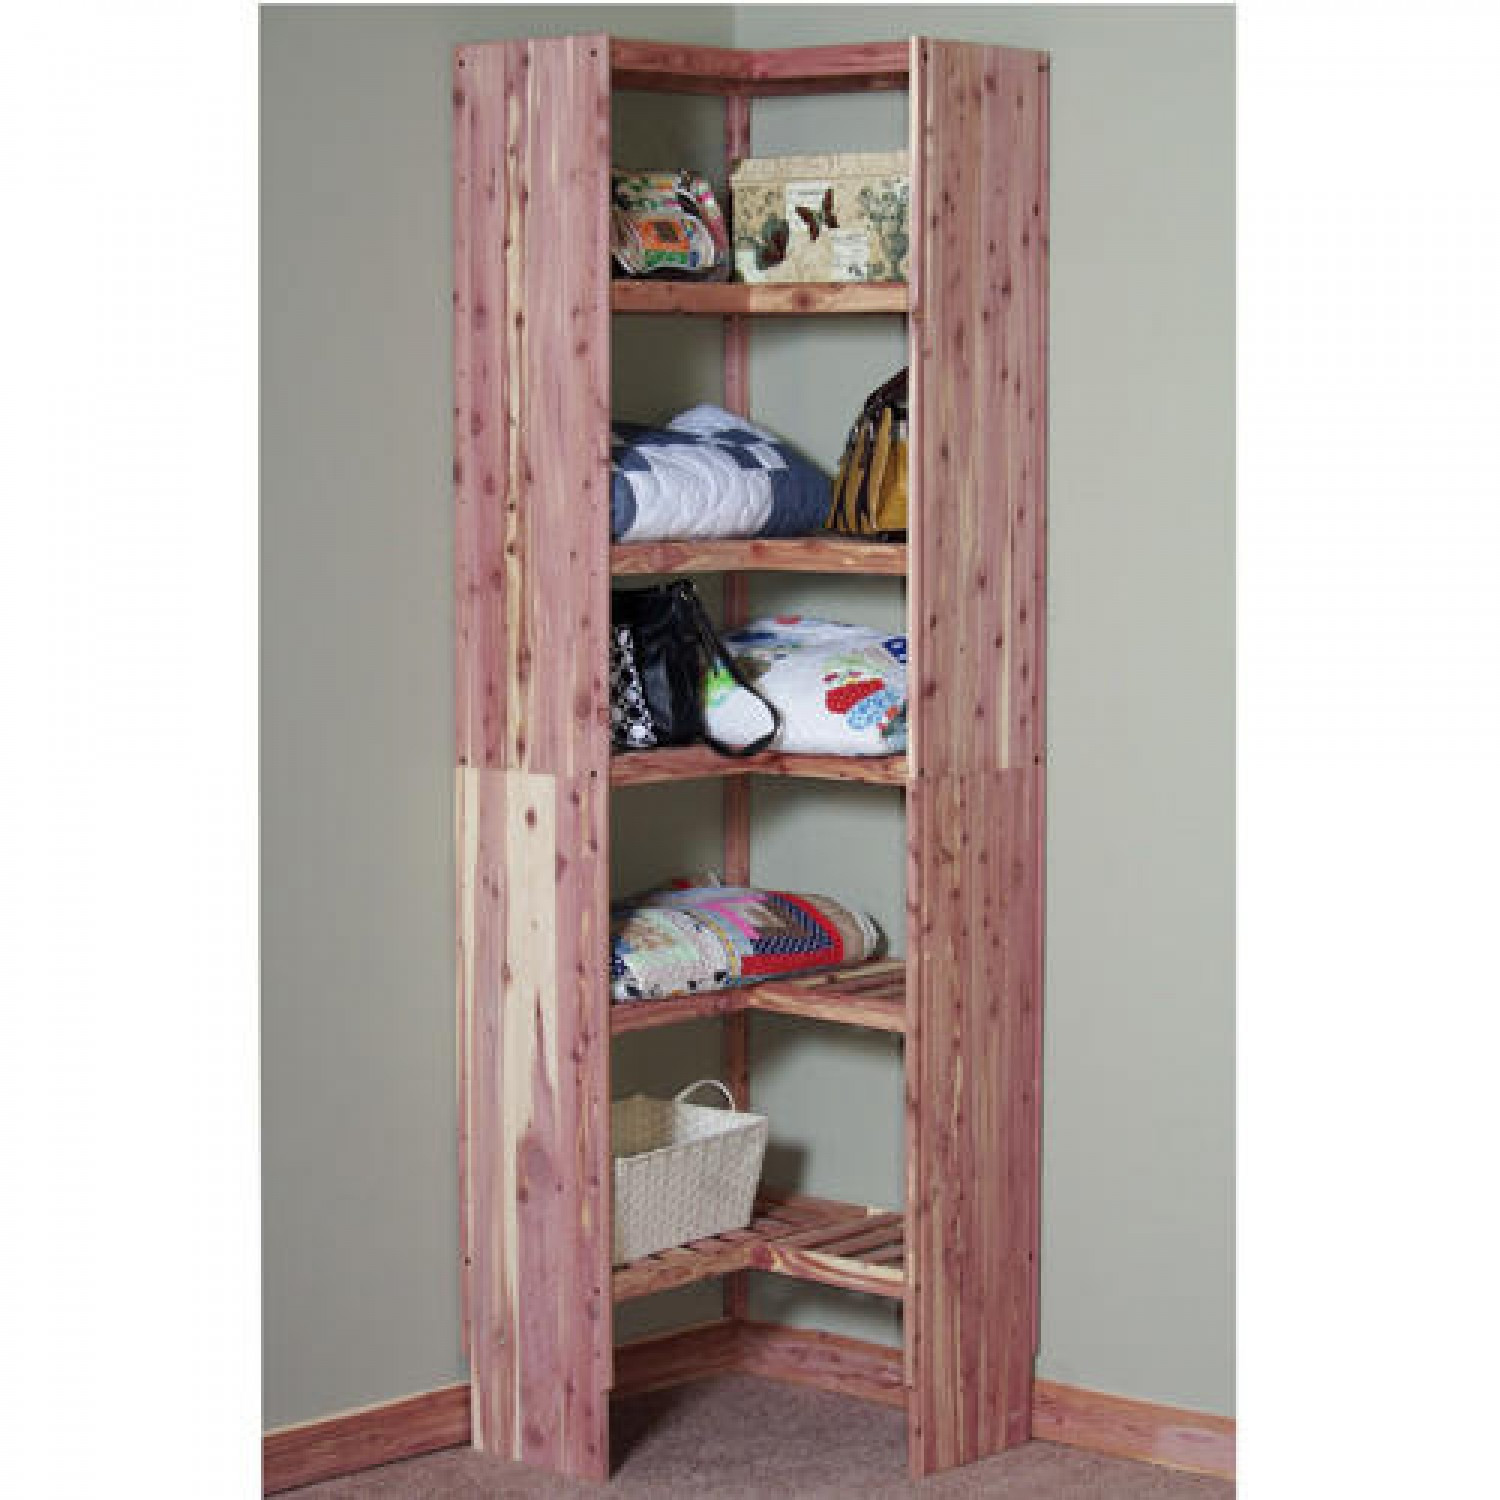 Inspiring Storage System Design Ideas with Cedar Closet Kit: Cubby Closet Organizer | Cedar Wood Lowes | Cedar Closet Kit